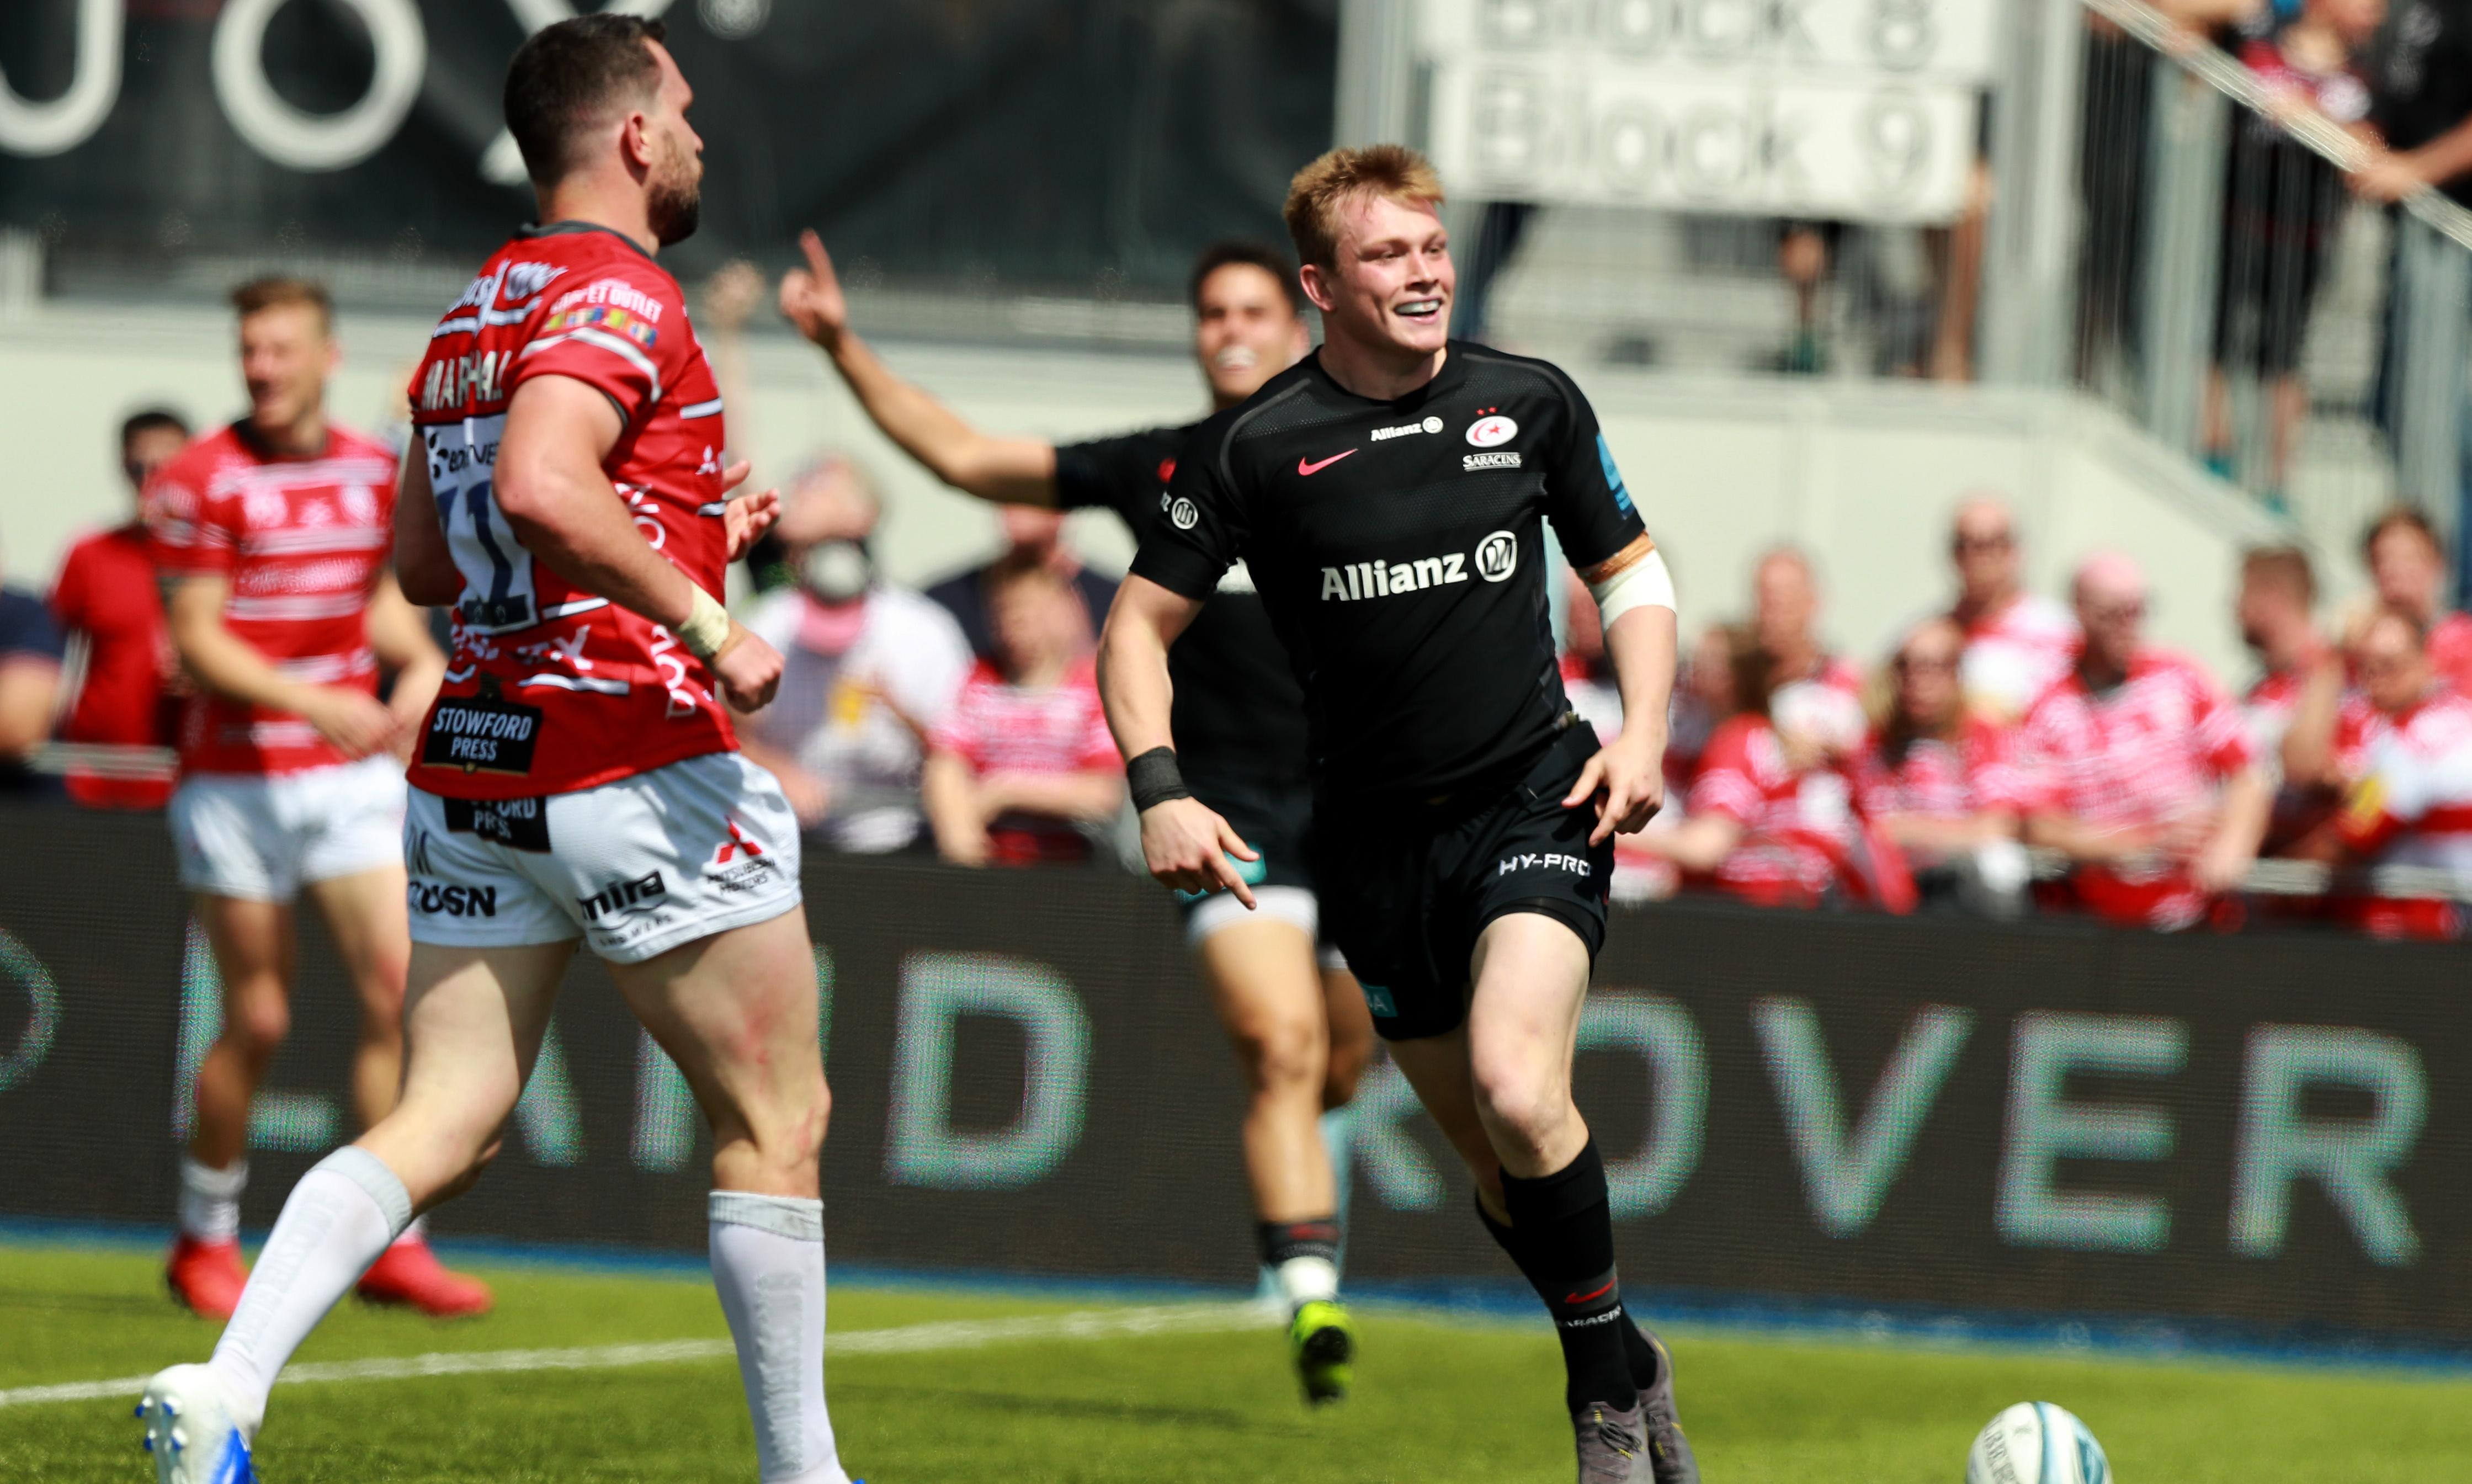 Exeter Chiefs believe they can make Europe's finest look second best